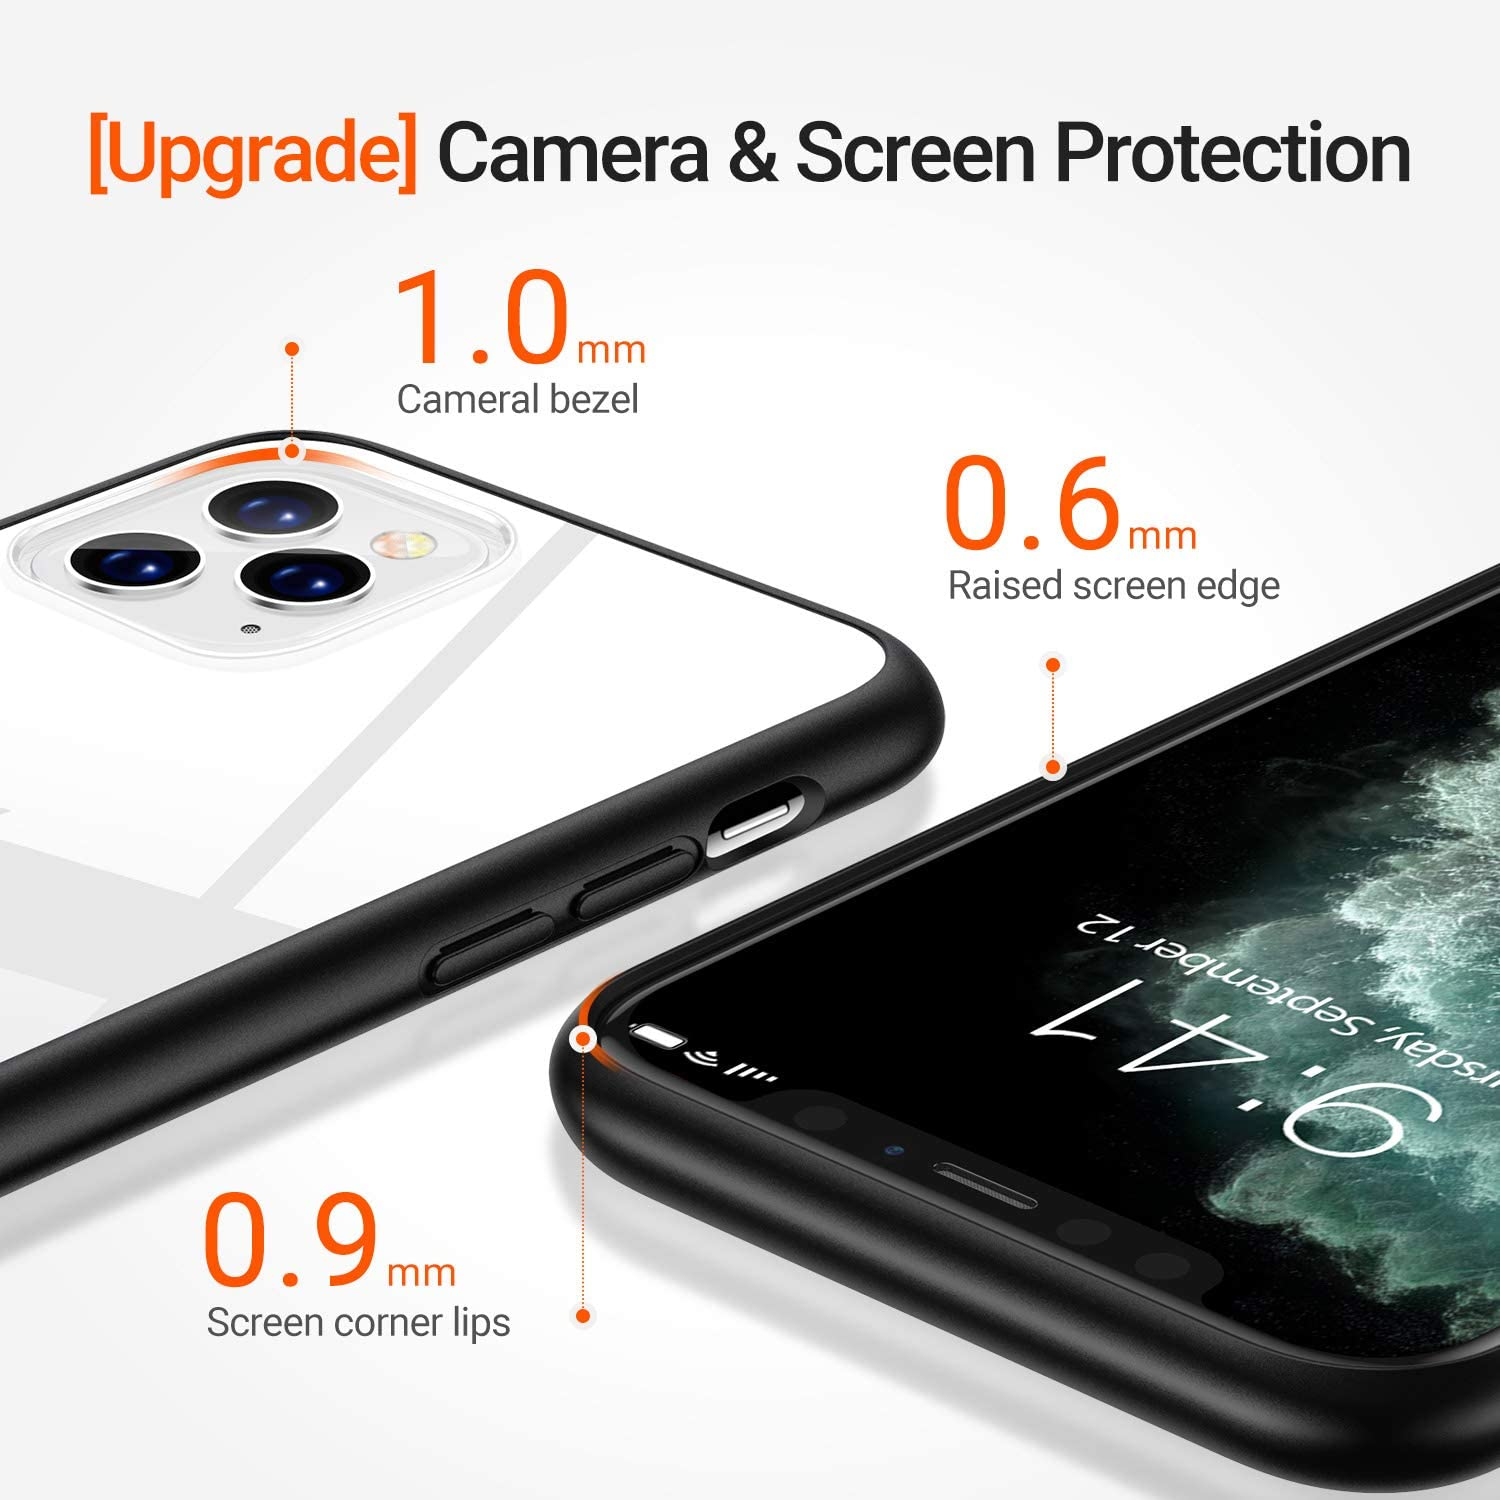 Slim Fit Hard Plastic Shockproof with X-Shock Protection Phone Case for iPhone 11 Pro Max 2019 Clear TORRAS Hybrid Clear iPhone 11 Pro Max Case